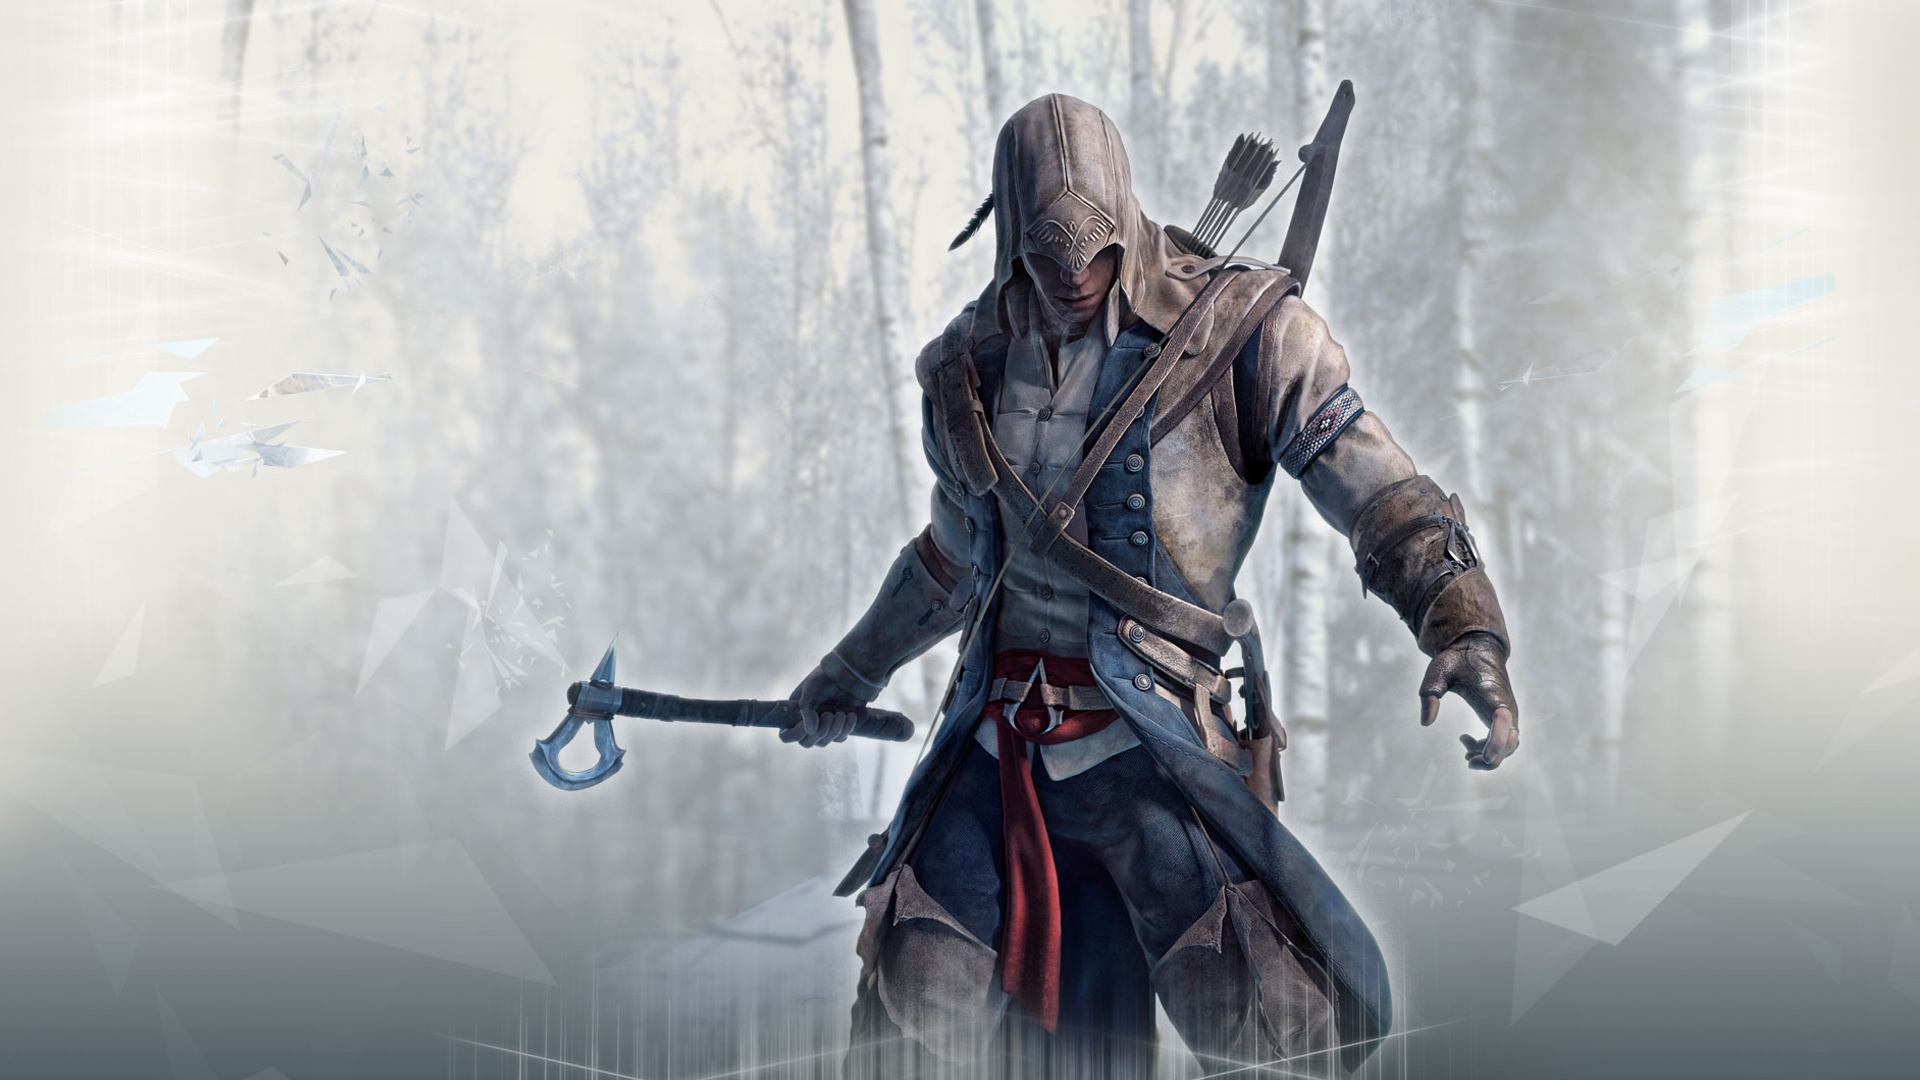 the Collection Assassins Creed Video Game Assassins Creed III 249521 1920x1080